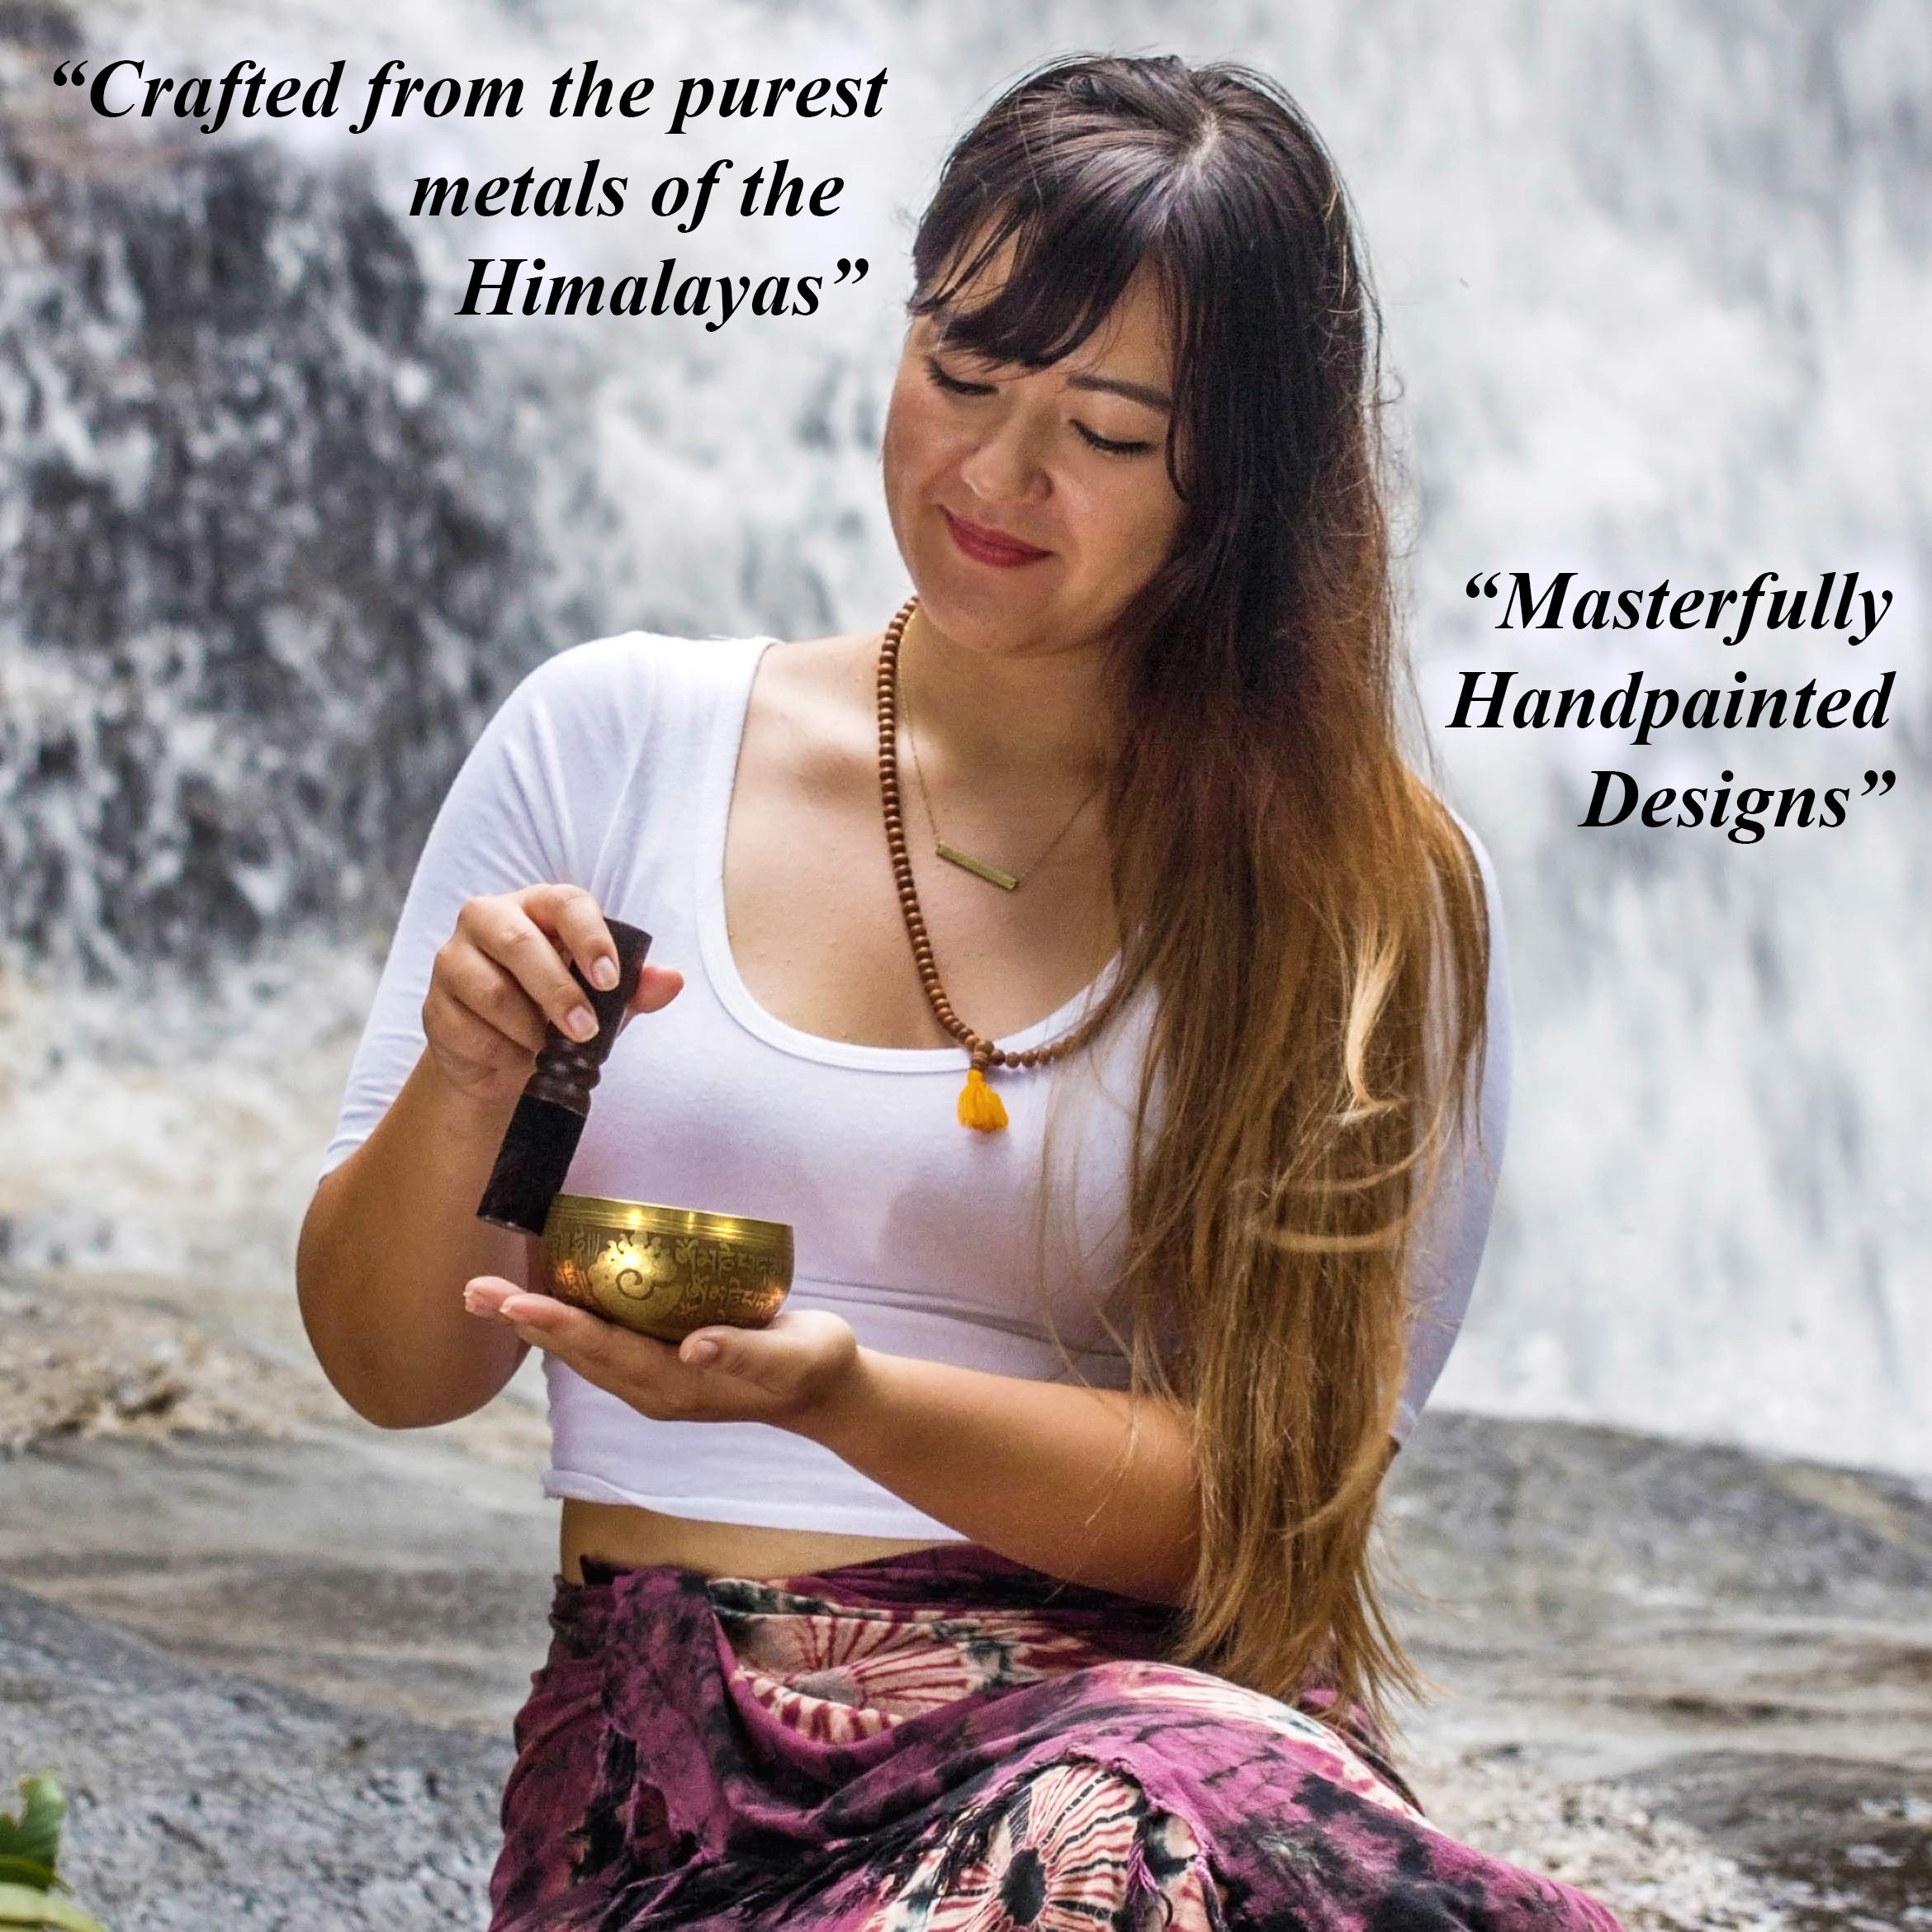 Tingsha Tibetan Singing Bowl Set by Zen Mind Design - with Tingsha Cymbals, Weighted Mallet, Handmade Cushion, Eco-Friendly Box and E-Book - for Yoga and Stress Relief Meditation by Zen Mind Design (Image #6)